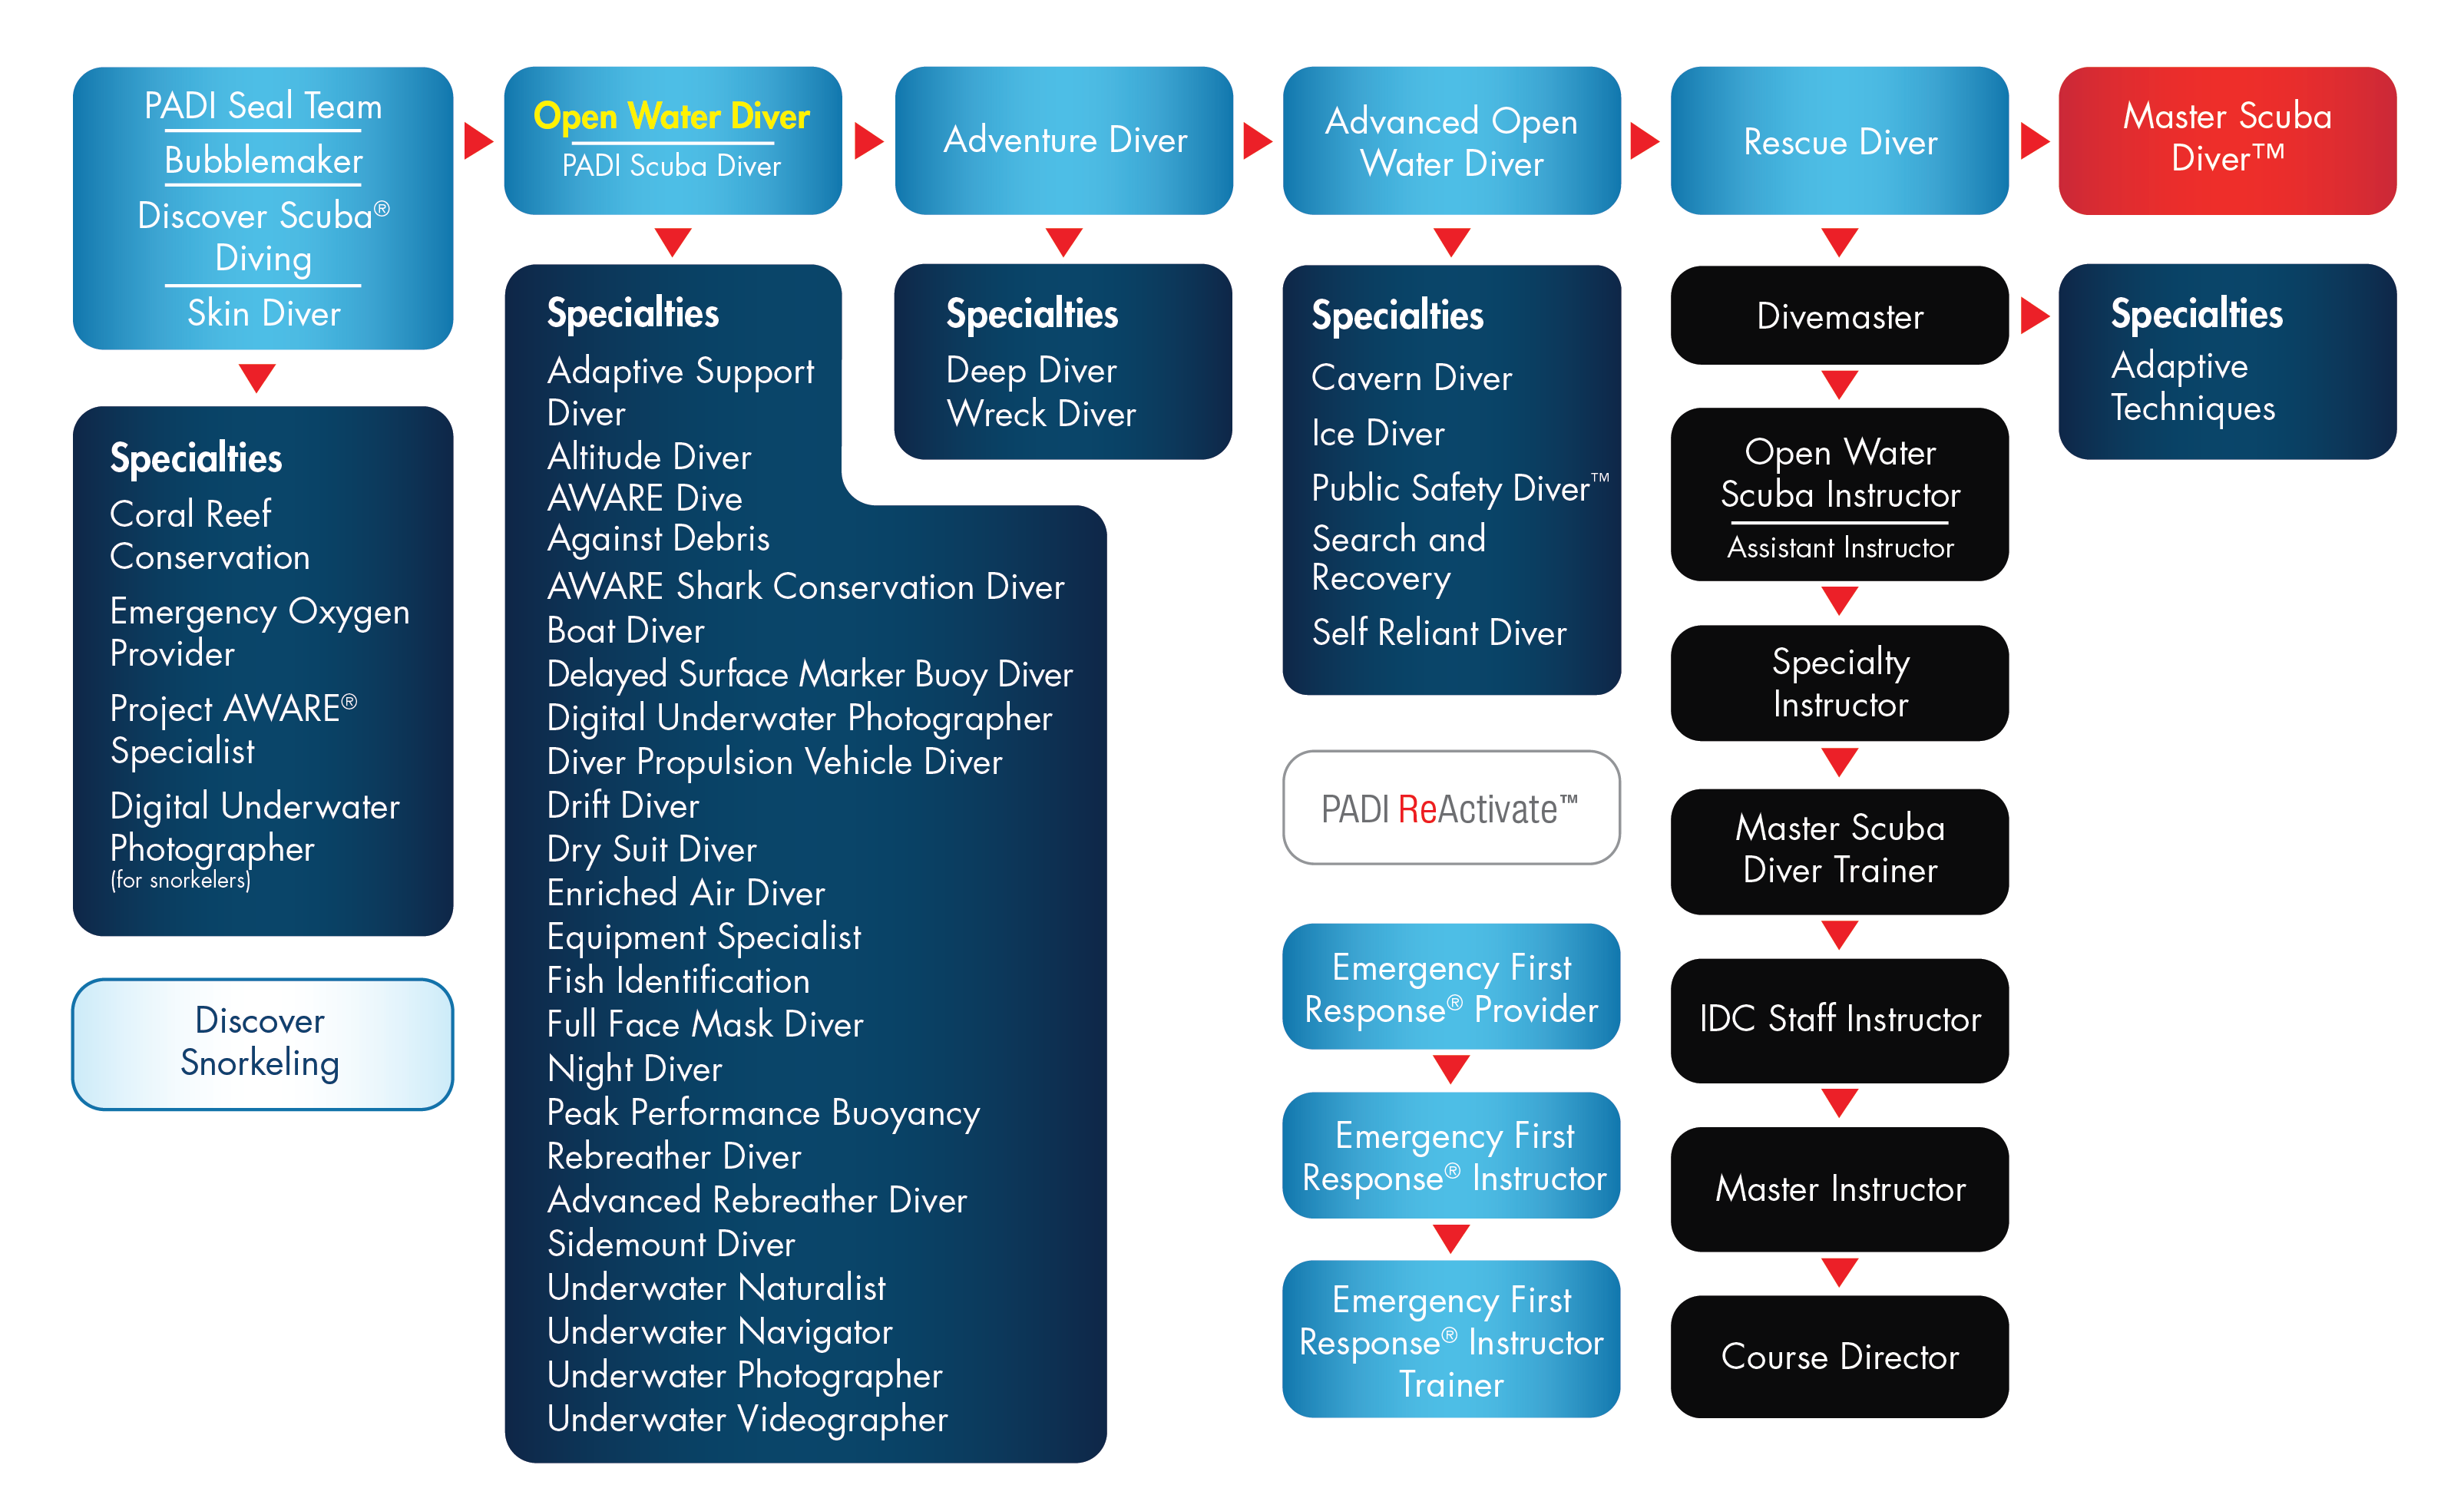 PADI ConEd Flowchart - Scuba Diving - Scuba ConEd